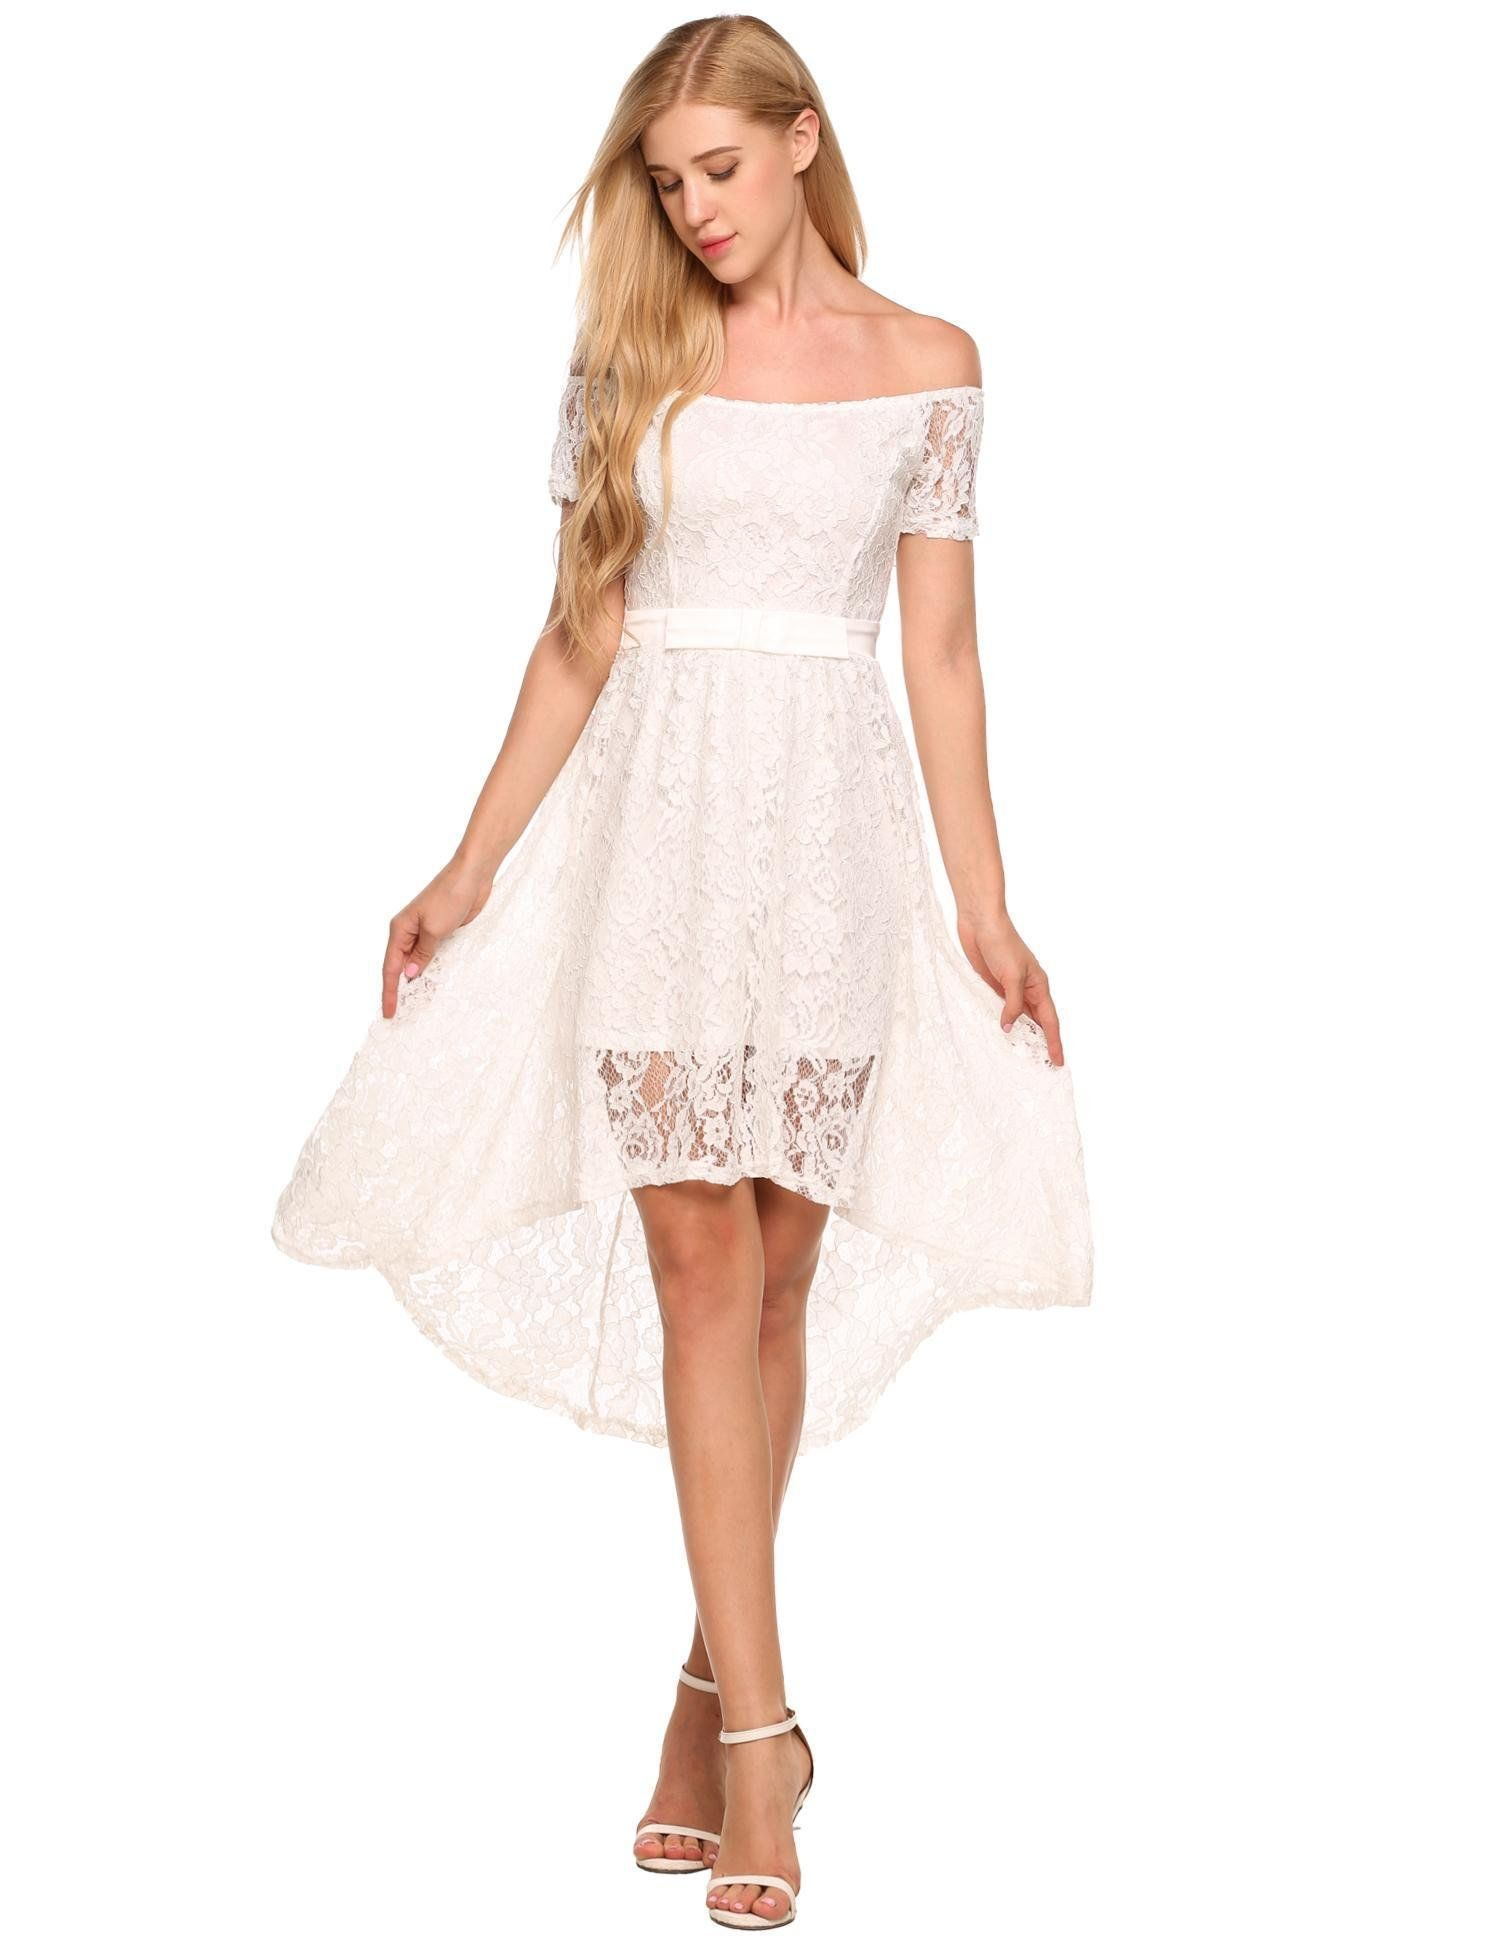 Angvns Womens Retro Floral Lace Bridesmaid Wedding Long Dress White